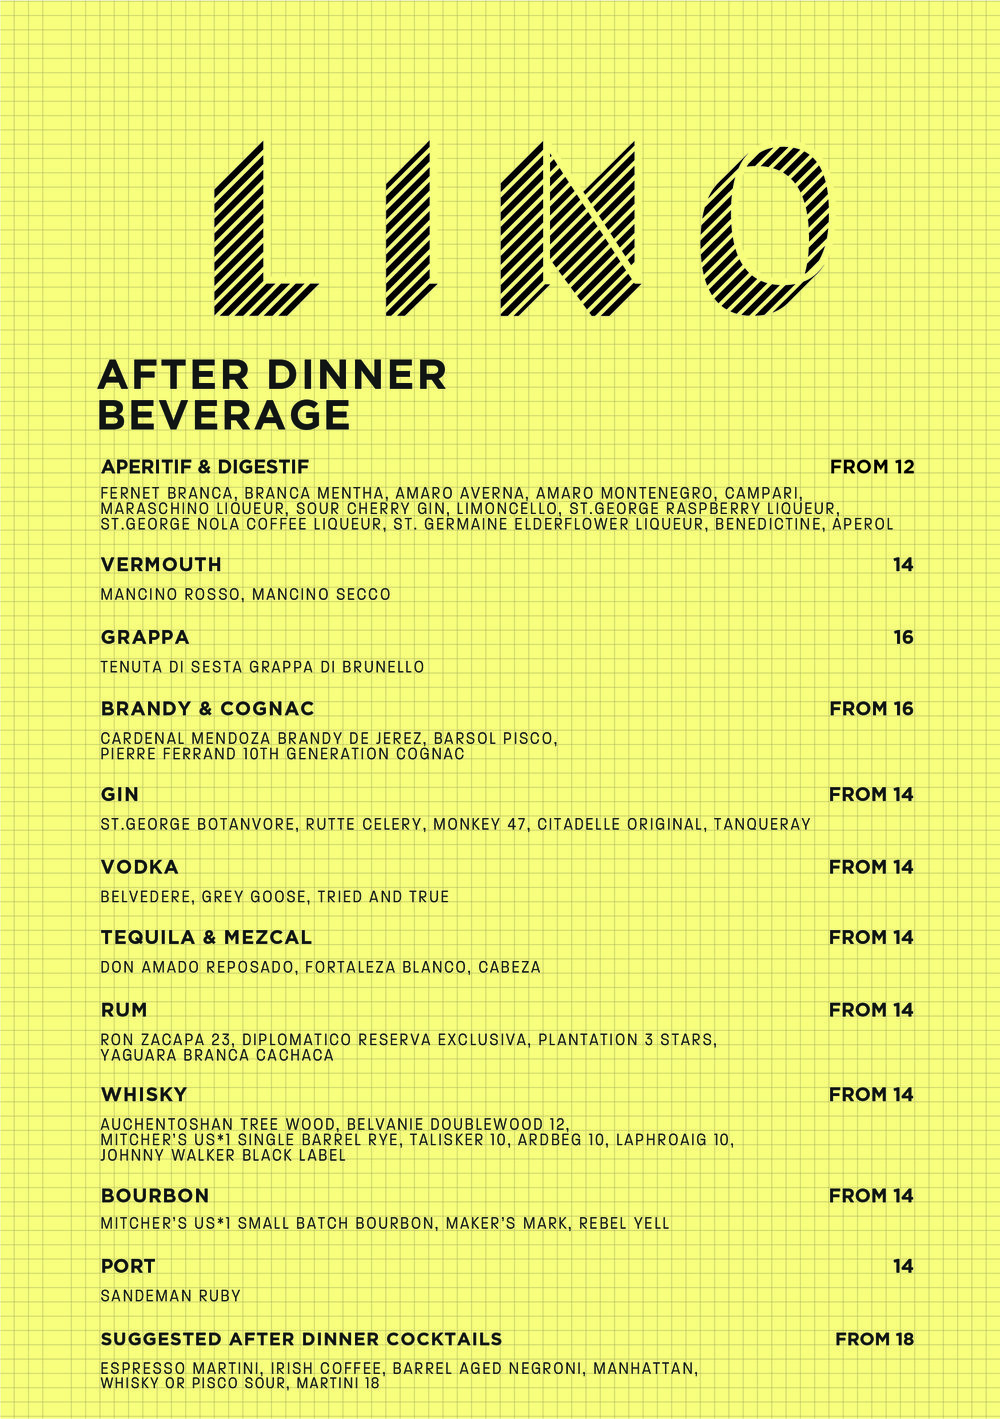 LINO Dessert + After Dinner Beverage Menu-02.jpg